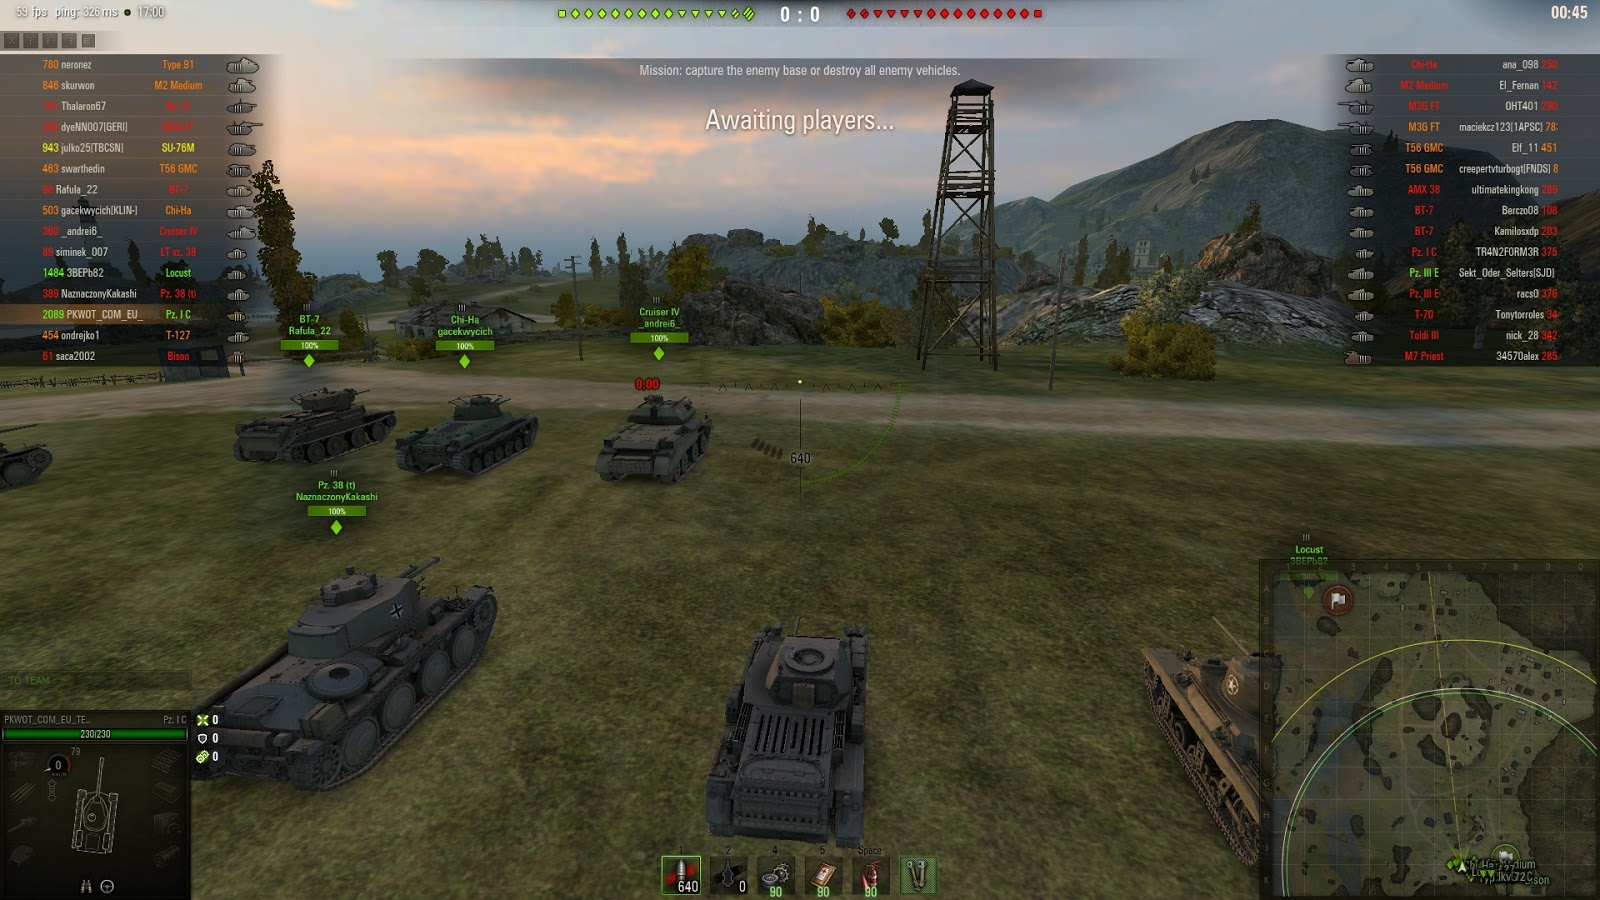 1 6 0 0 Battle Stats By PolarFox (player stats without XVM) – WoT by